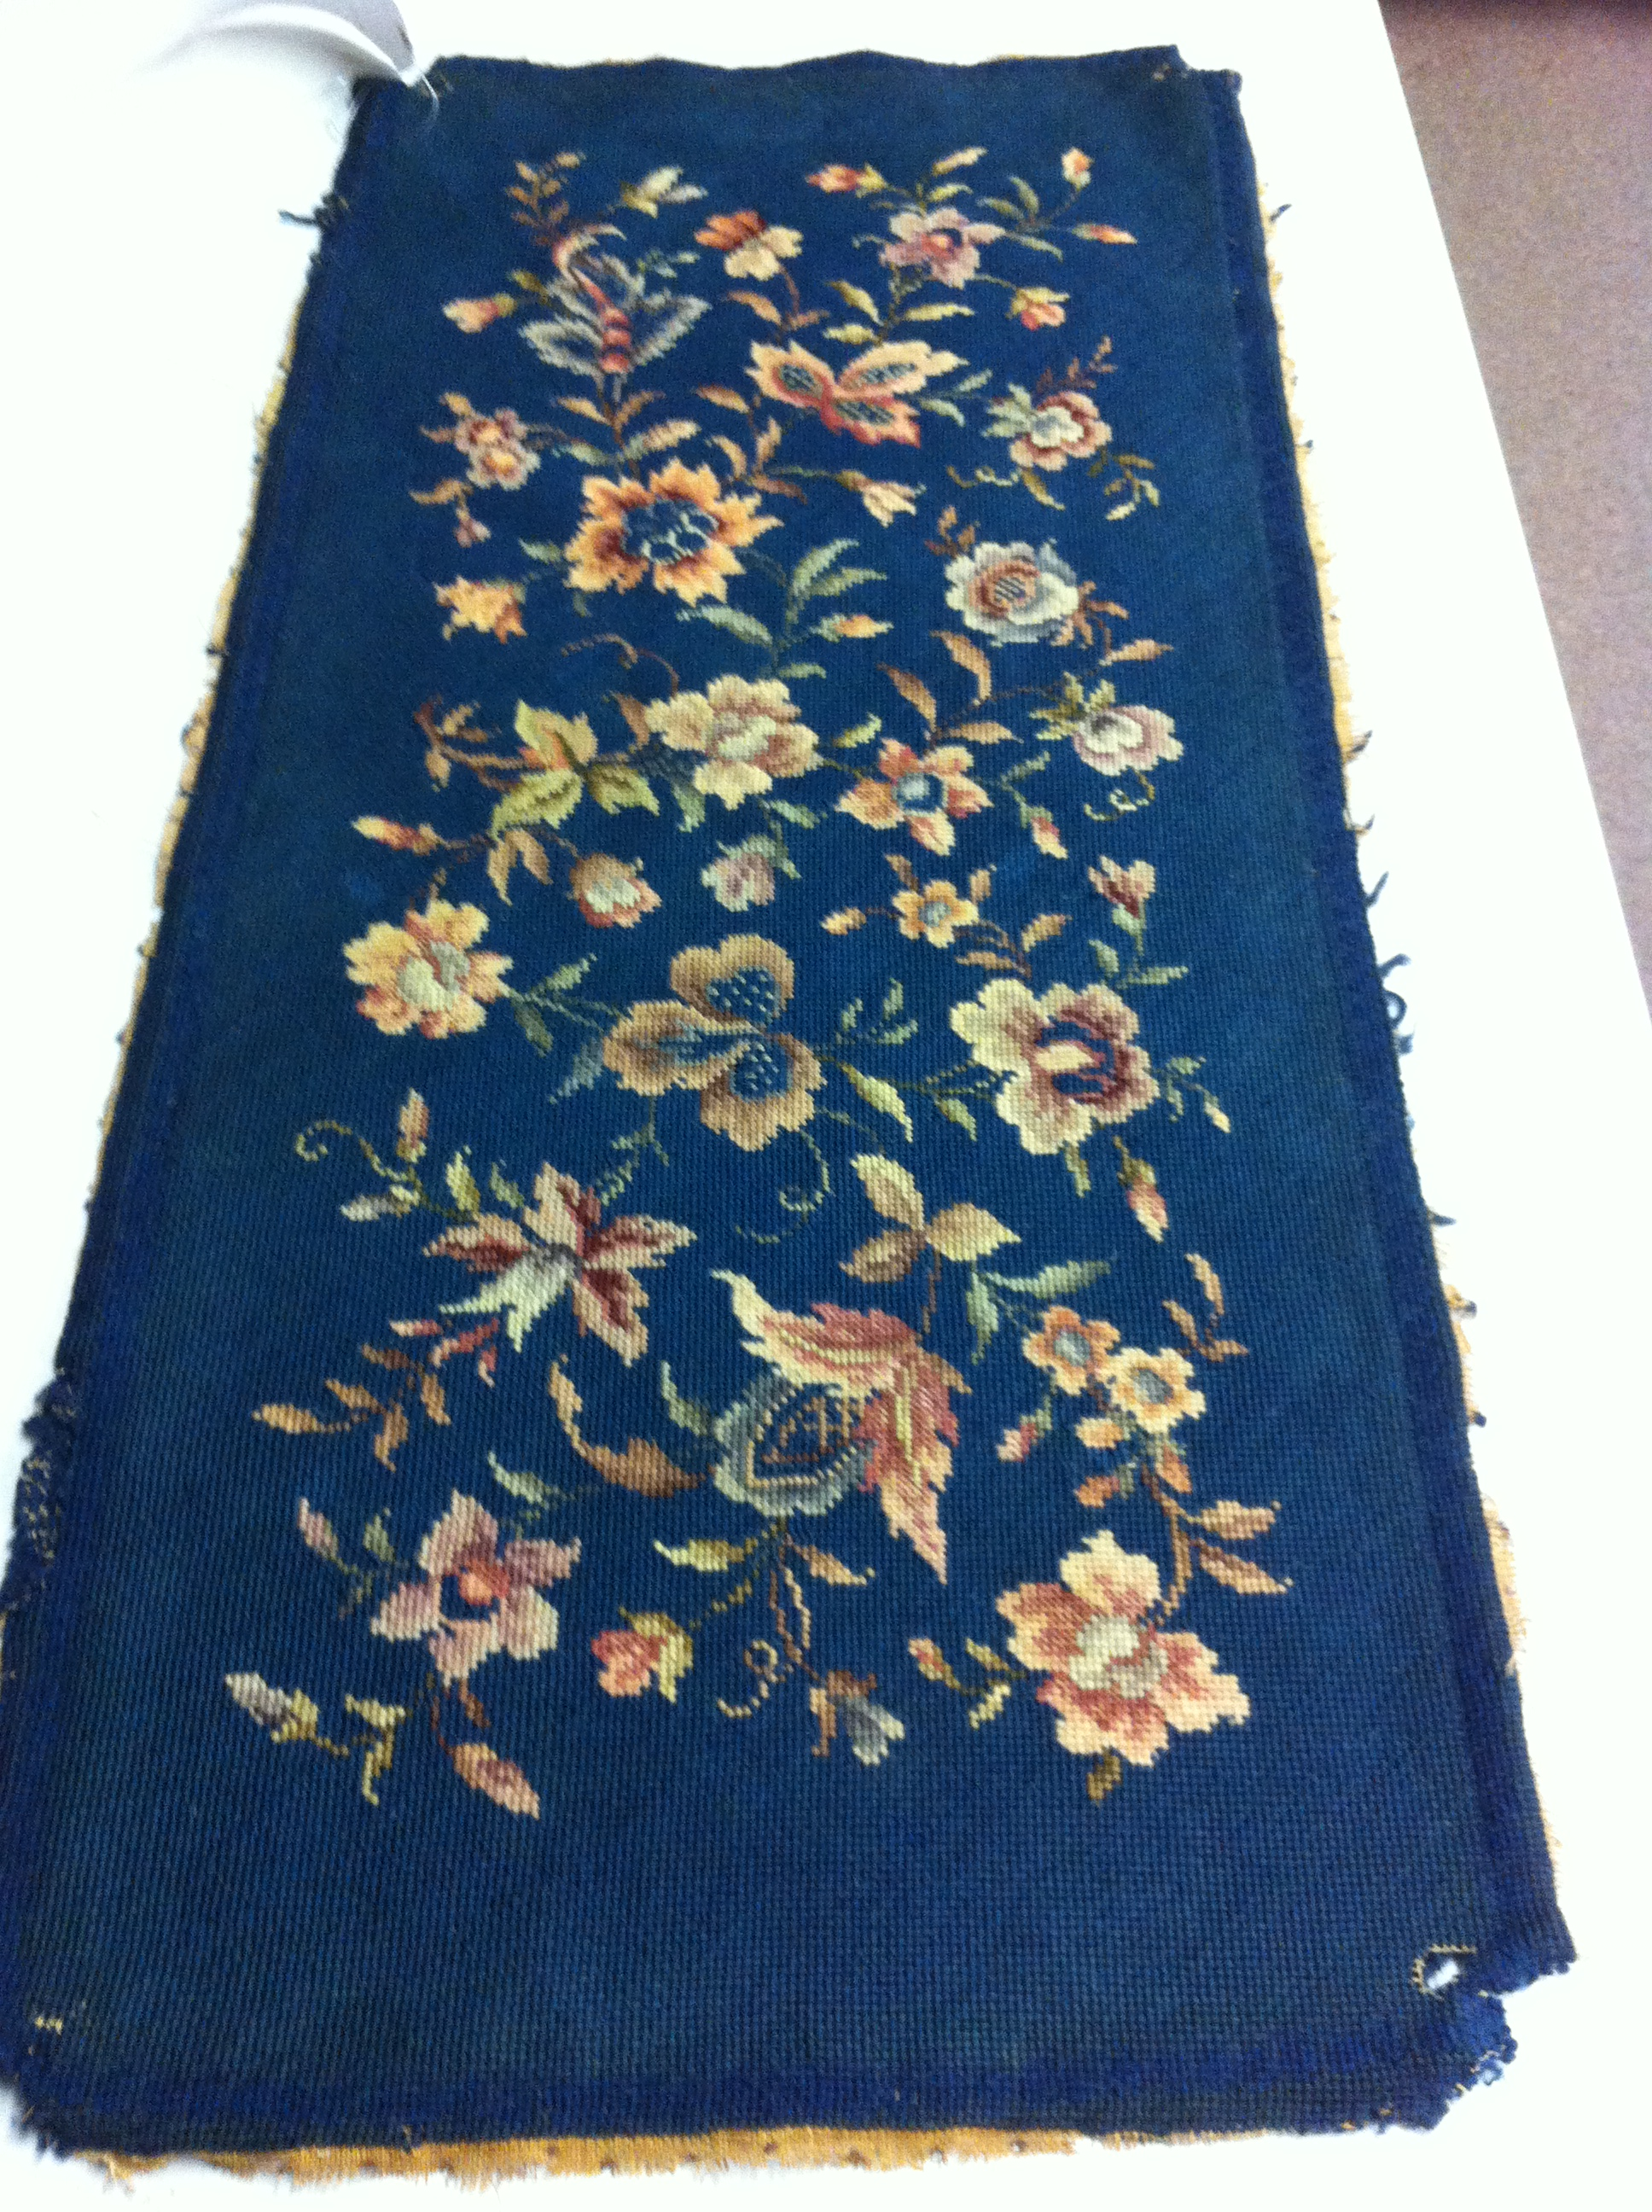 Antique Needlepoint Upholstery Cleaning Boston 781 995 0683